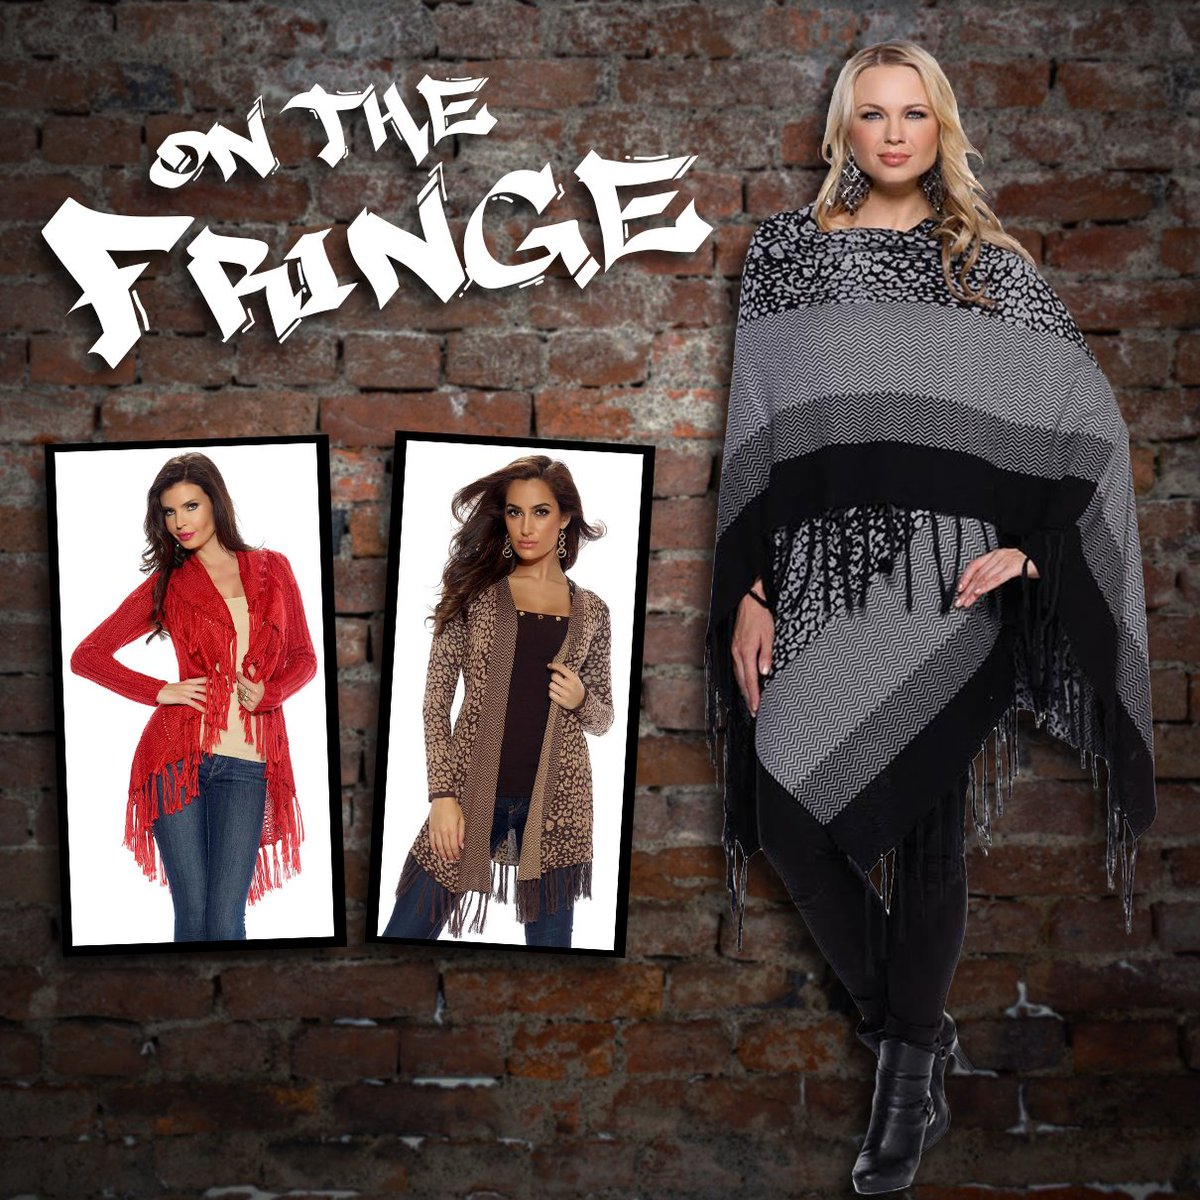 TREND ALERT: This Fall have fun with fringe! https://t.co/7bJaAaKlsy https://t.co/ZViQmVK1aU